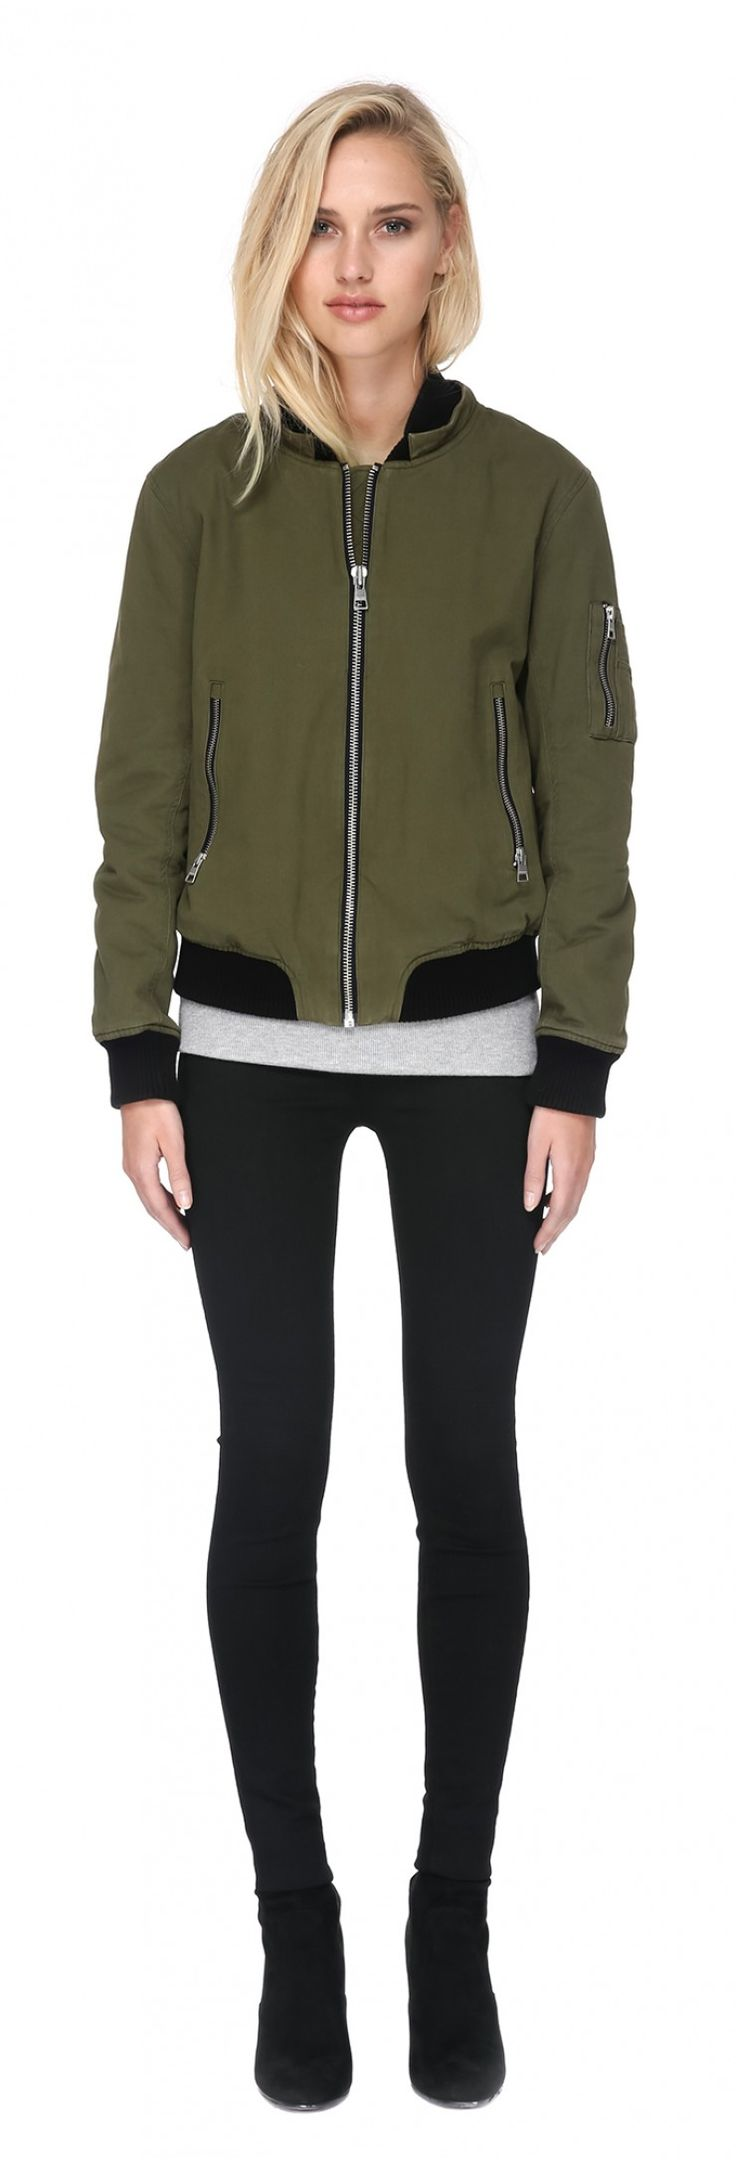 BRANCA-R bomber jacket with removable hood and fur in army